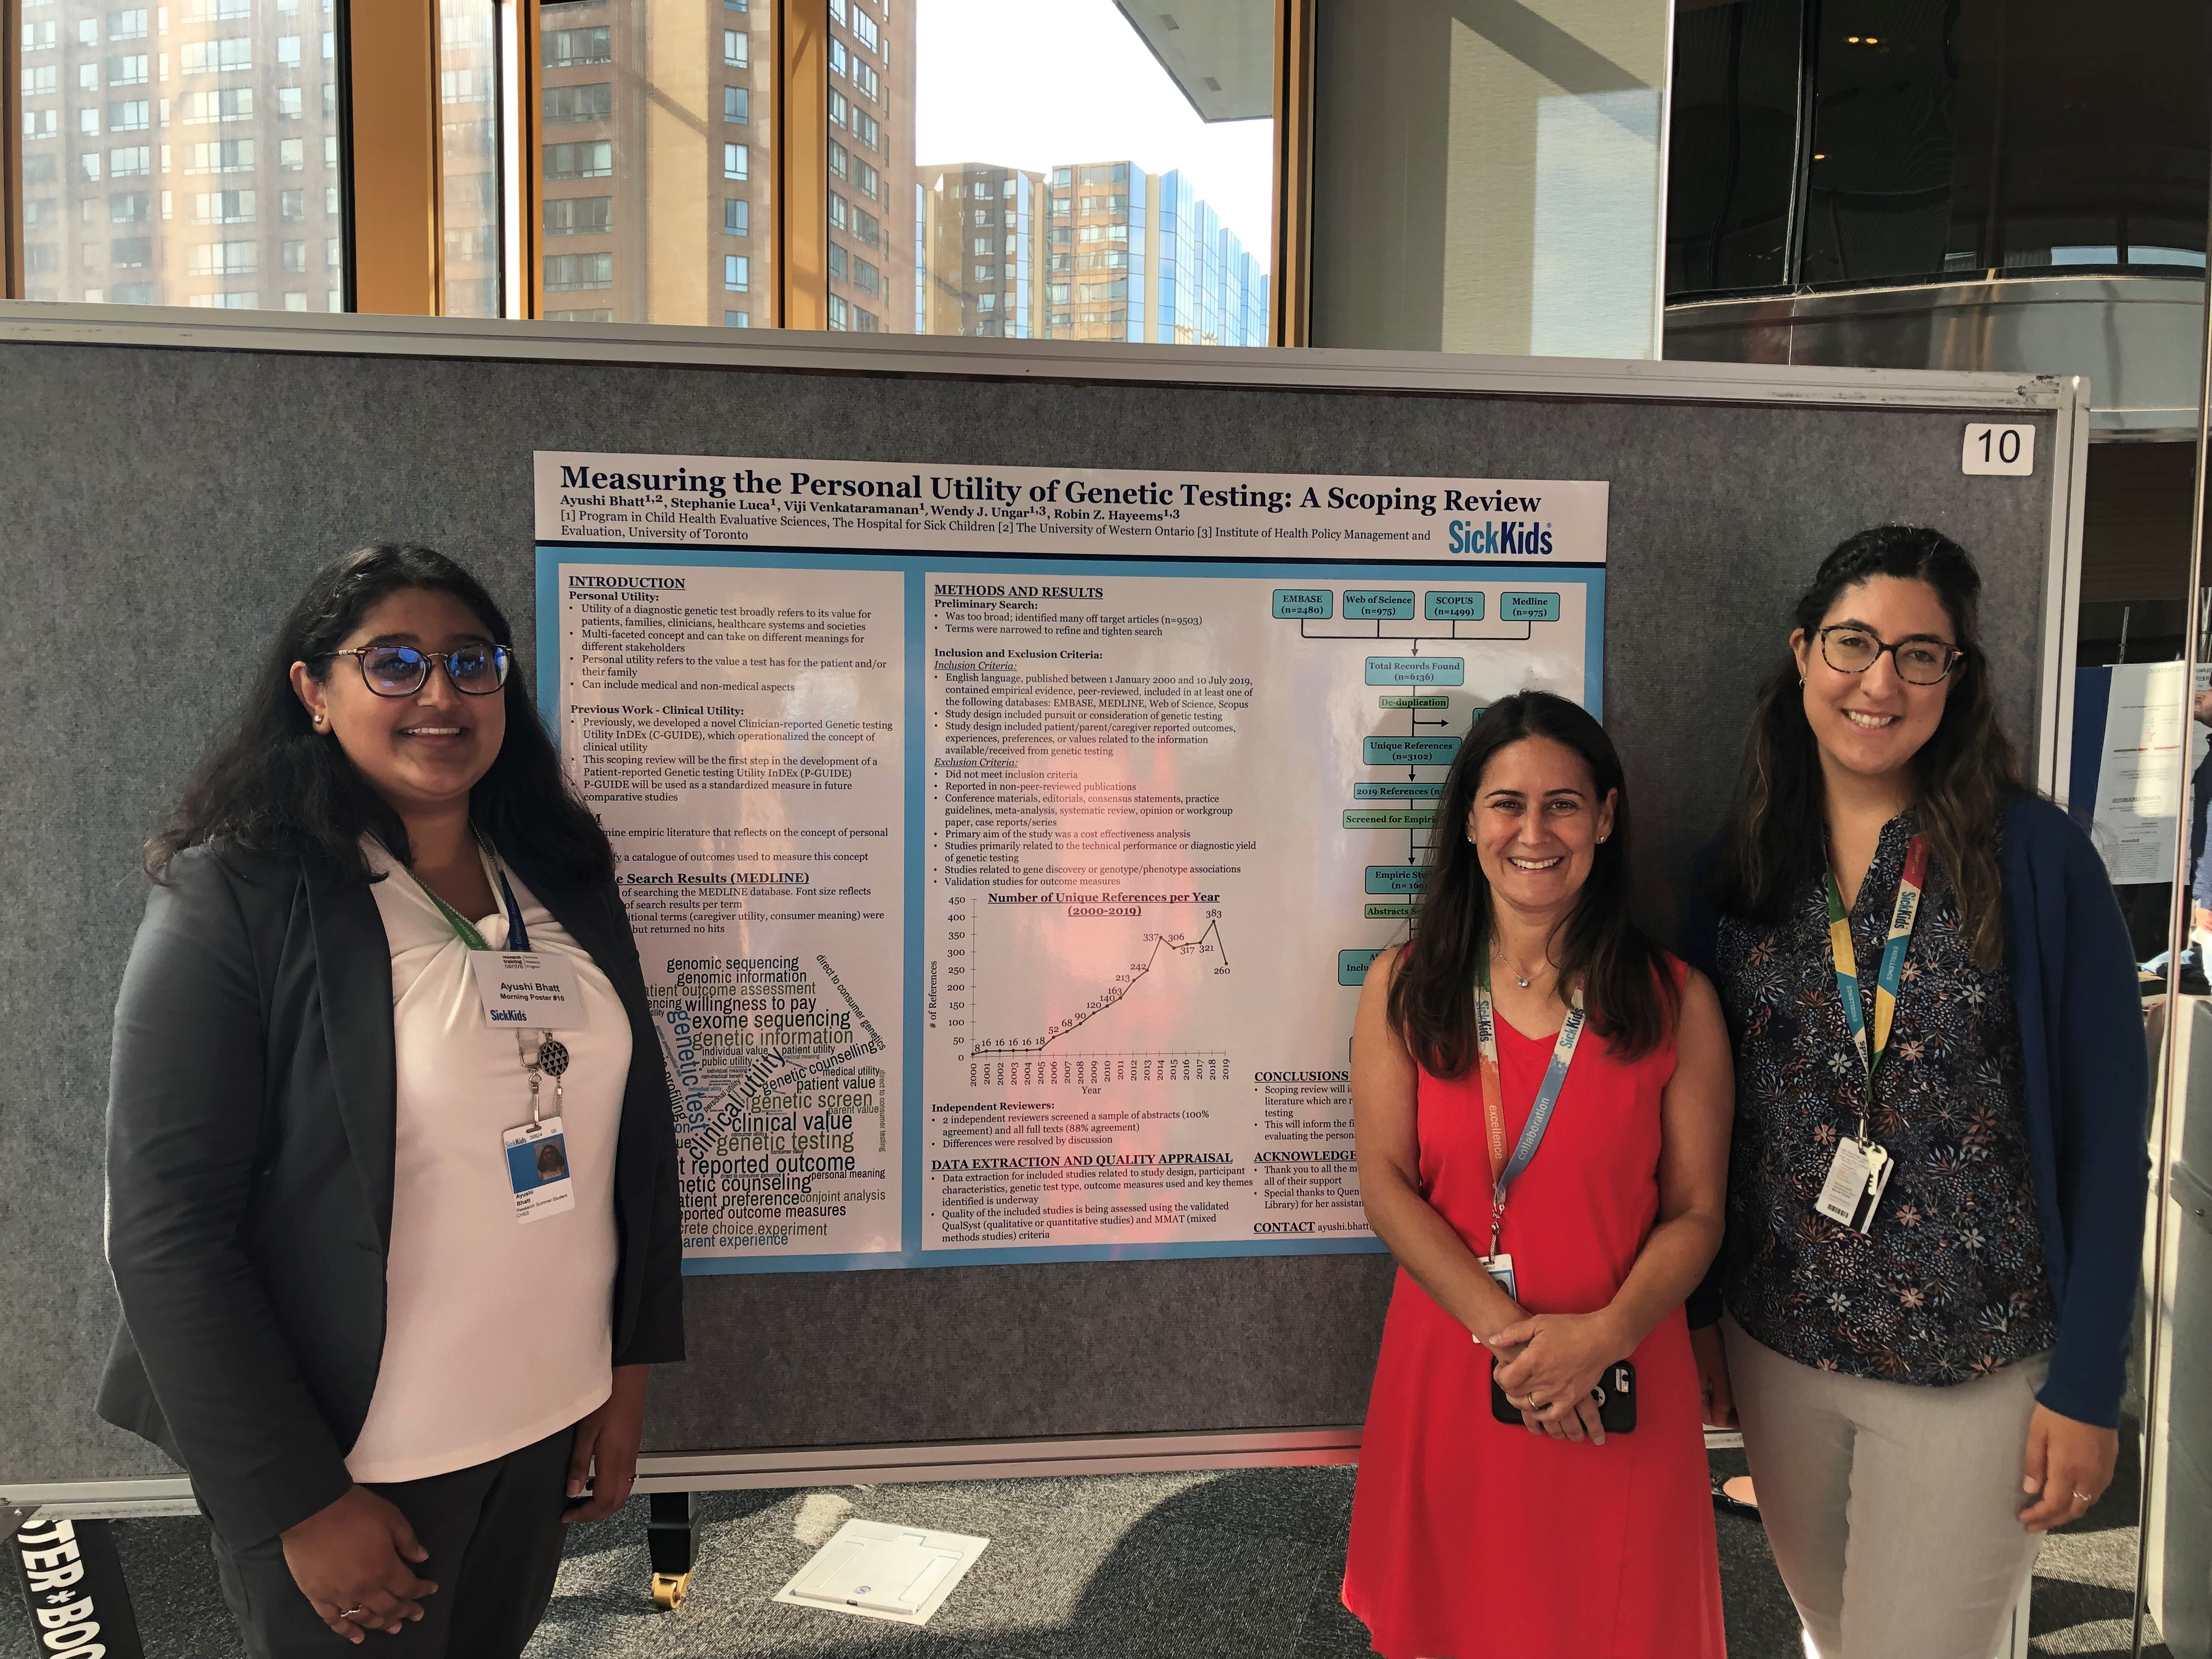 Dr. Robin Hayeems & Stephanie Luca showing support for summer student Ayushi Bhatt at the SickKids Summer Student Symposium - August 2019